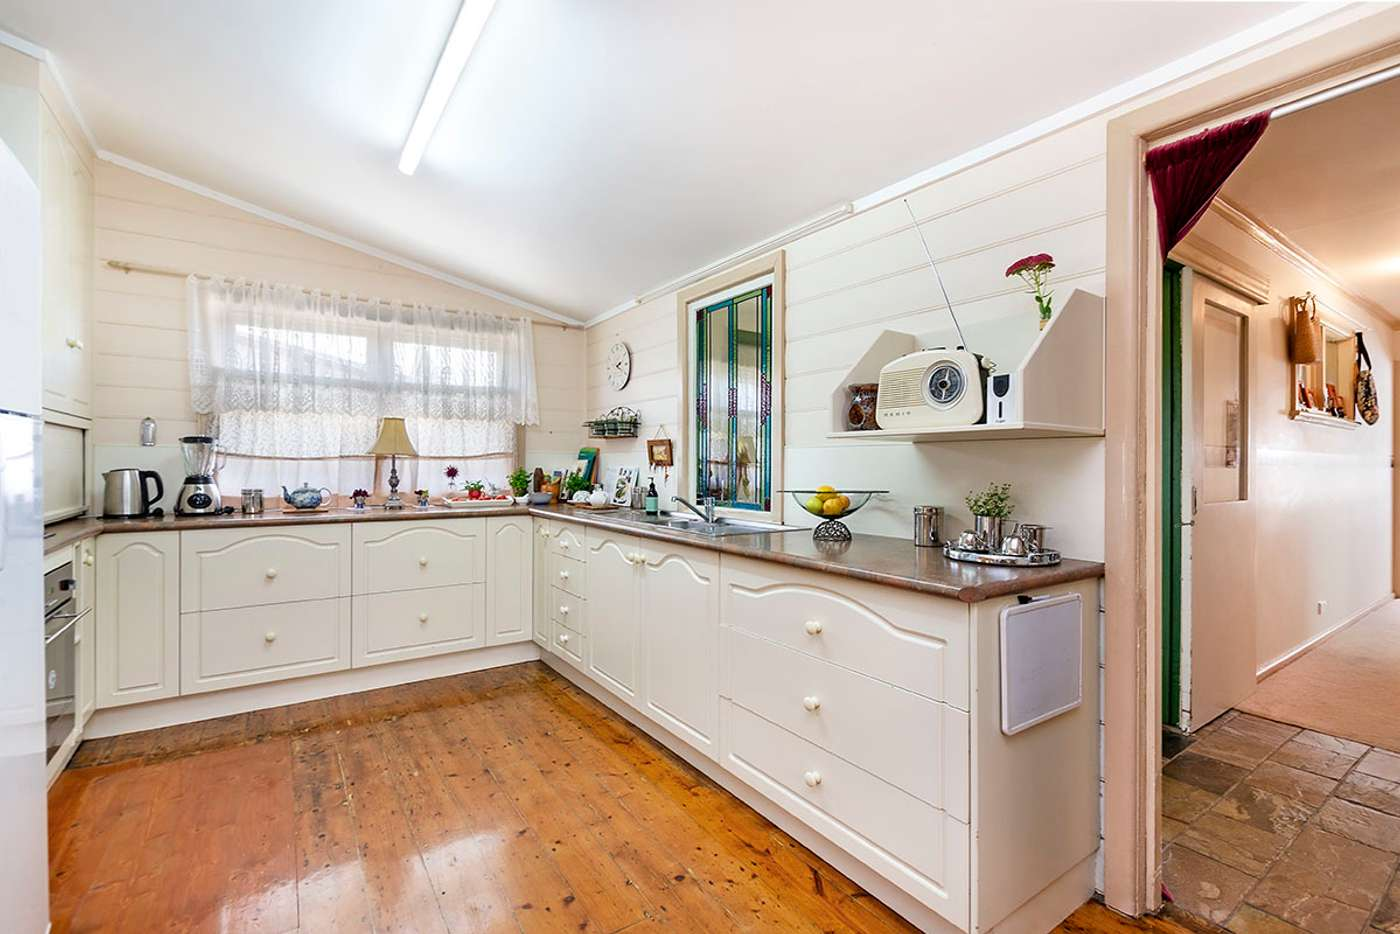 Fifth view of Homely house listing, 62 Gawler Street, Portland VIC 3305